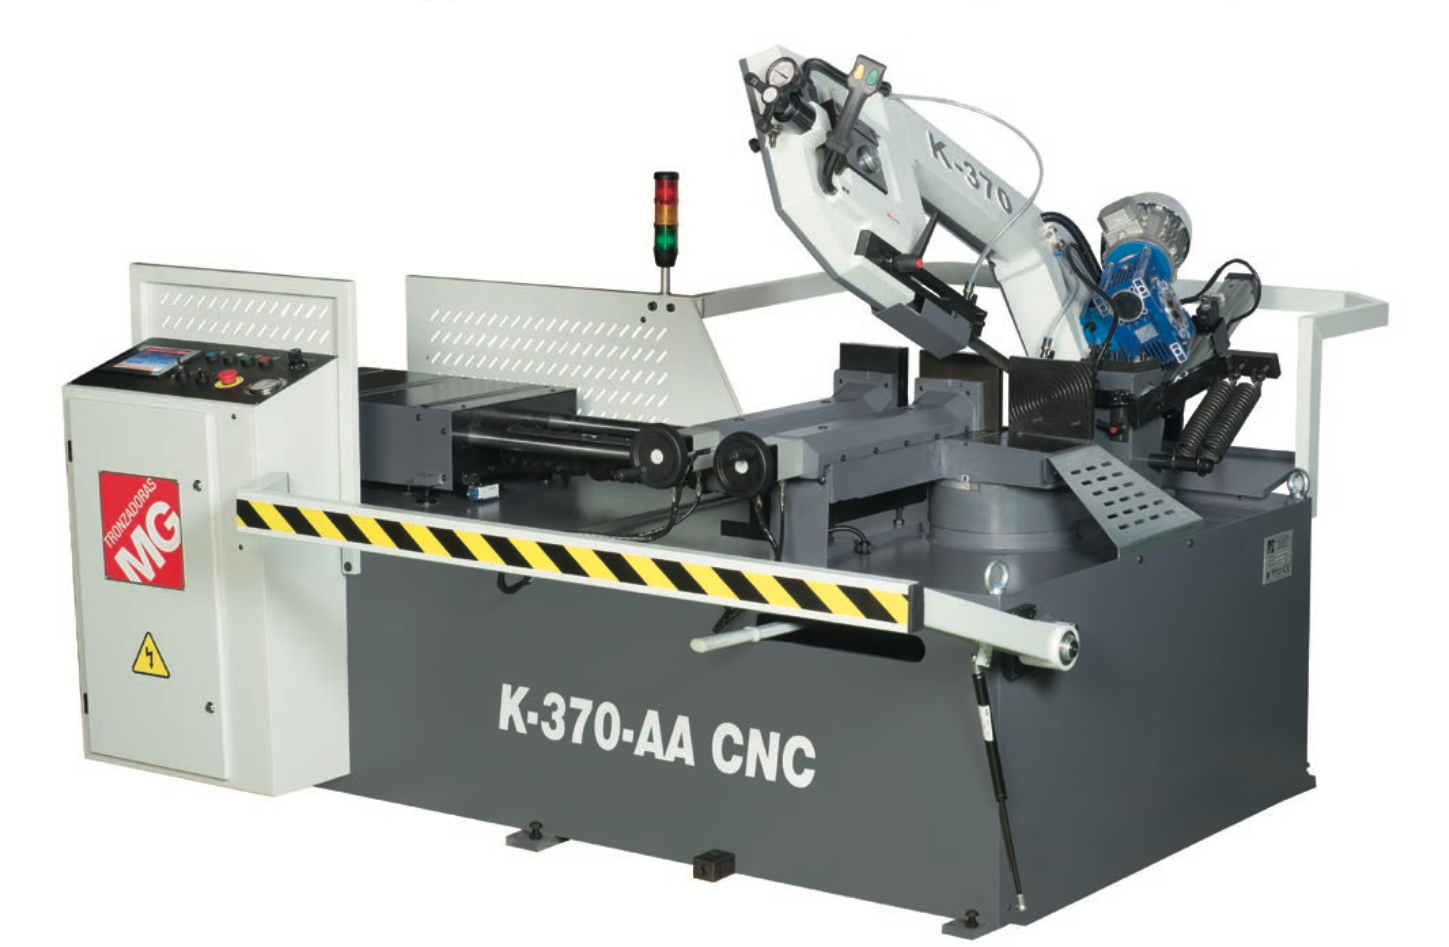 Scie a ruban avec amenage automatique K 370 AA CNC MG Tronzadoras